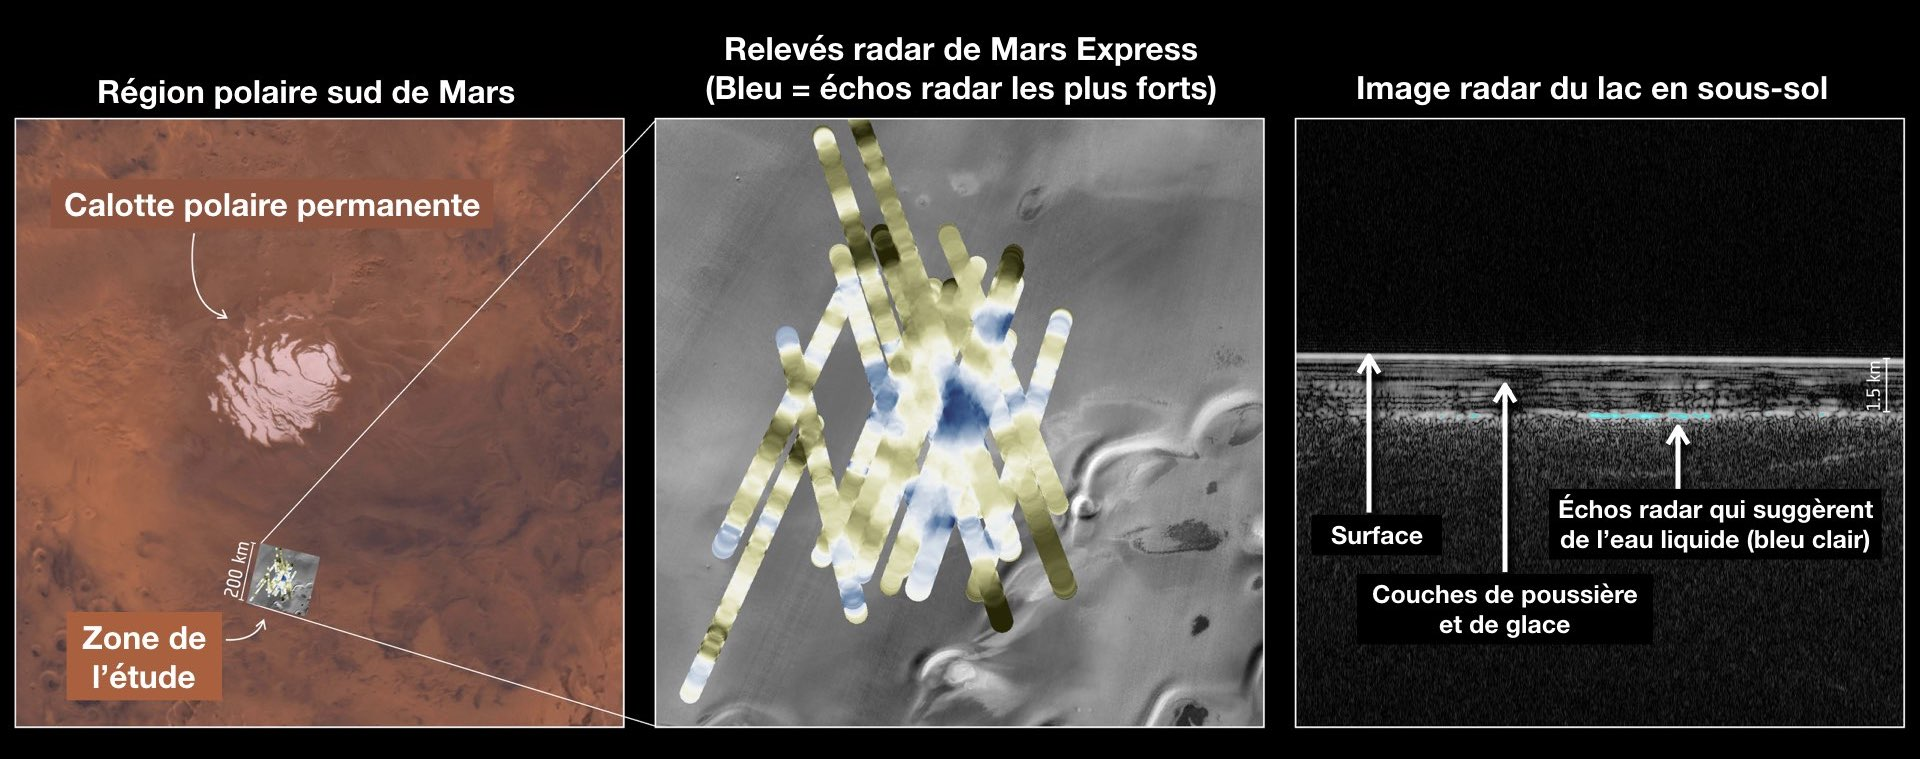 Résumé en images et schémas de la découverte d'un lac souterrain par l'instrument MARSIS de Mars Express. Crédit : Adaptation : Cité de l'espace - Context map: NASA/Viking; THEMIS background: NASA/JPL-Caltech/Arizona State University; MARSIS data: ESA/NASA/JPL/ASI/Univ. Rome; R. Orosei et al 2018